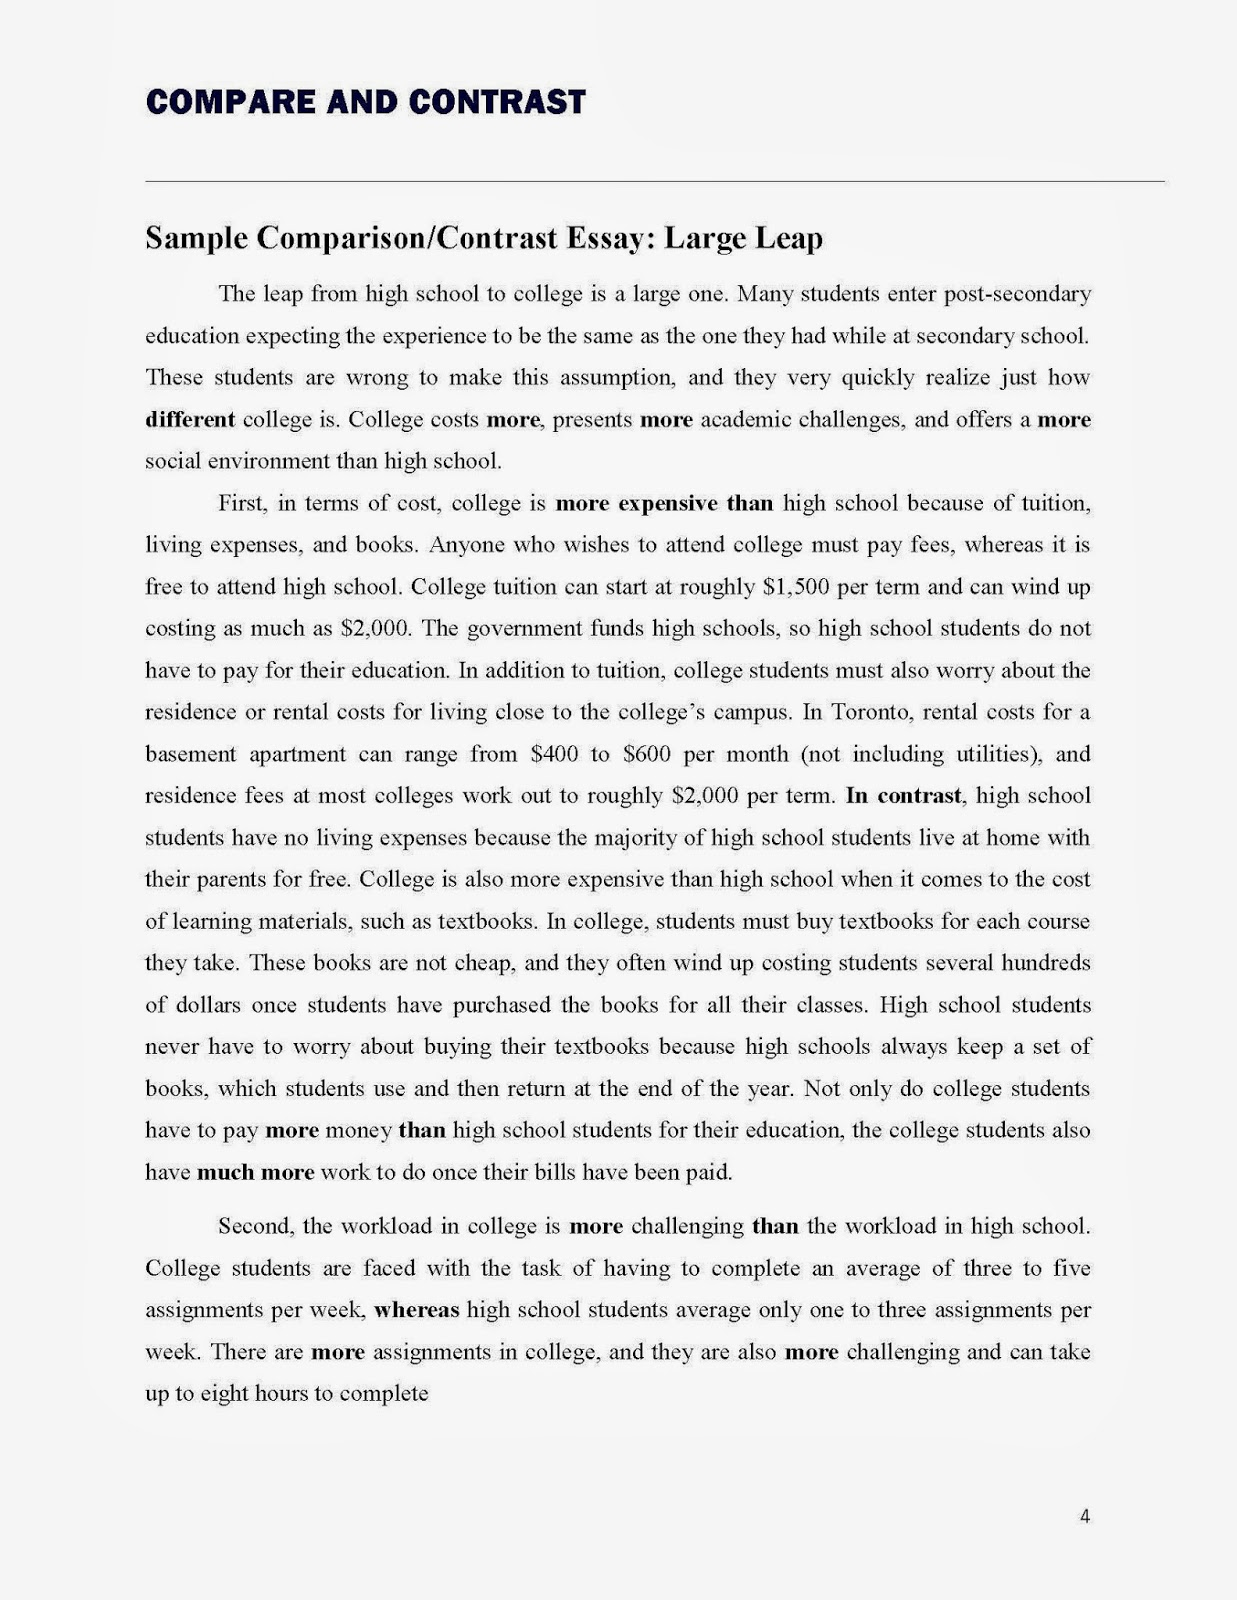 comparison essay topics for college comparison essay ideas compare  compare contrast essay prompts compare contrast essay writing compare and contrast essay prompt liao ipnodns rucompare